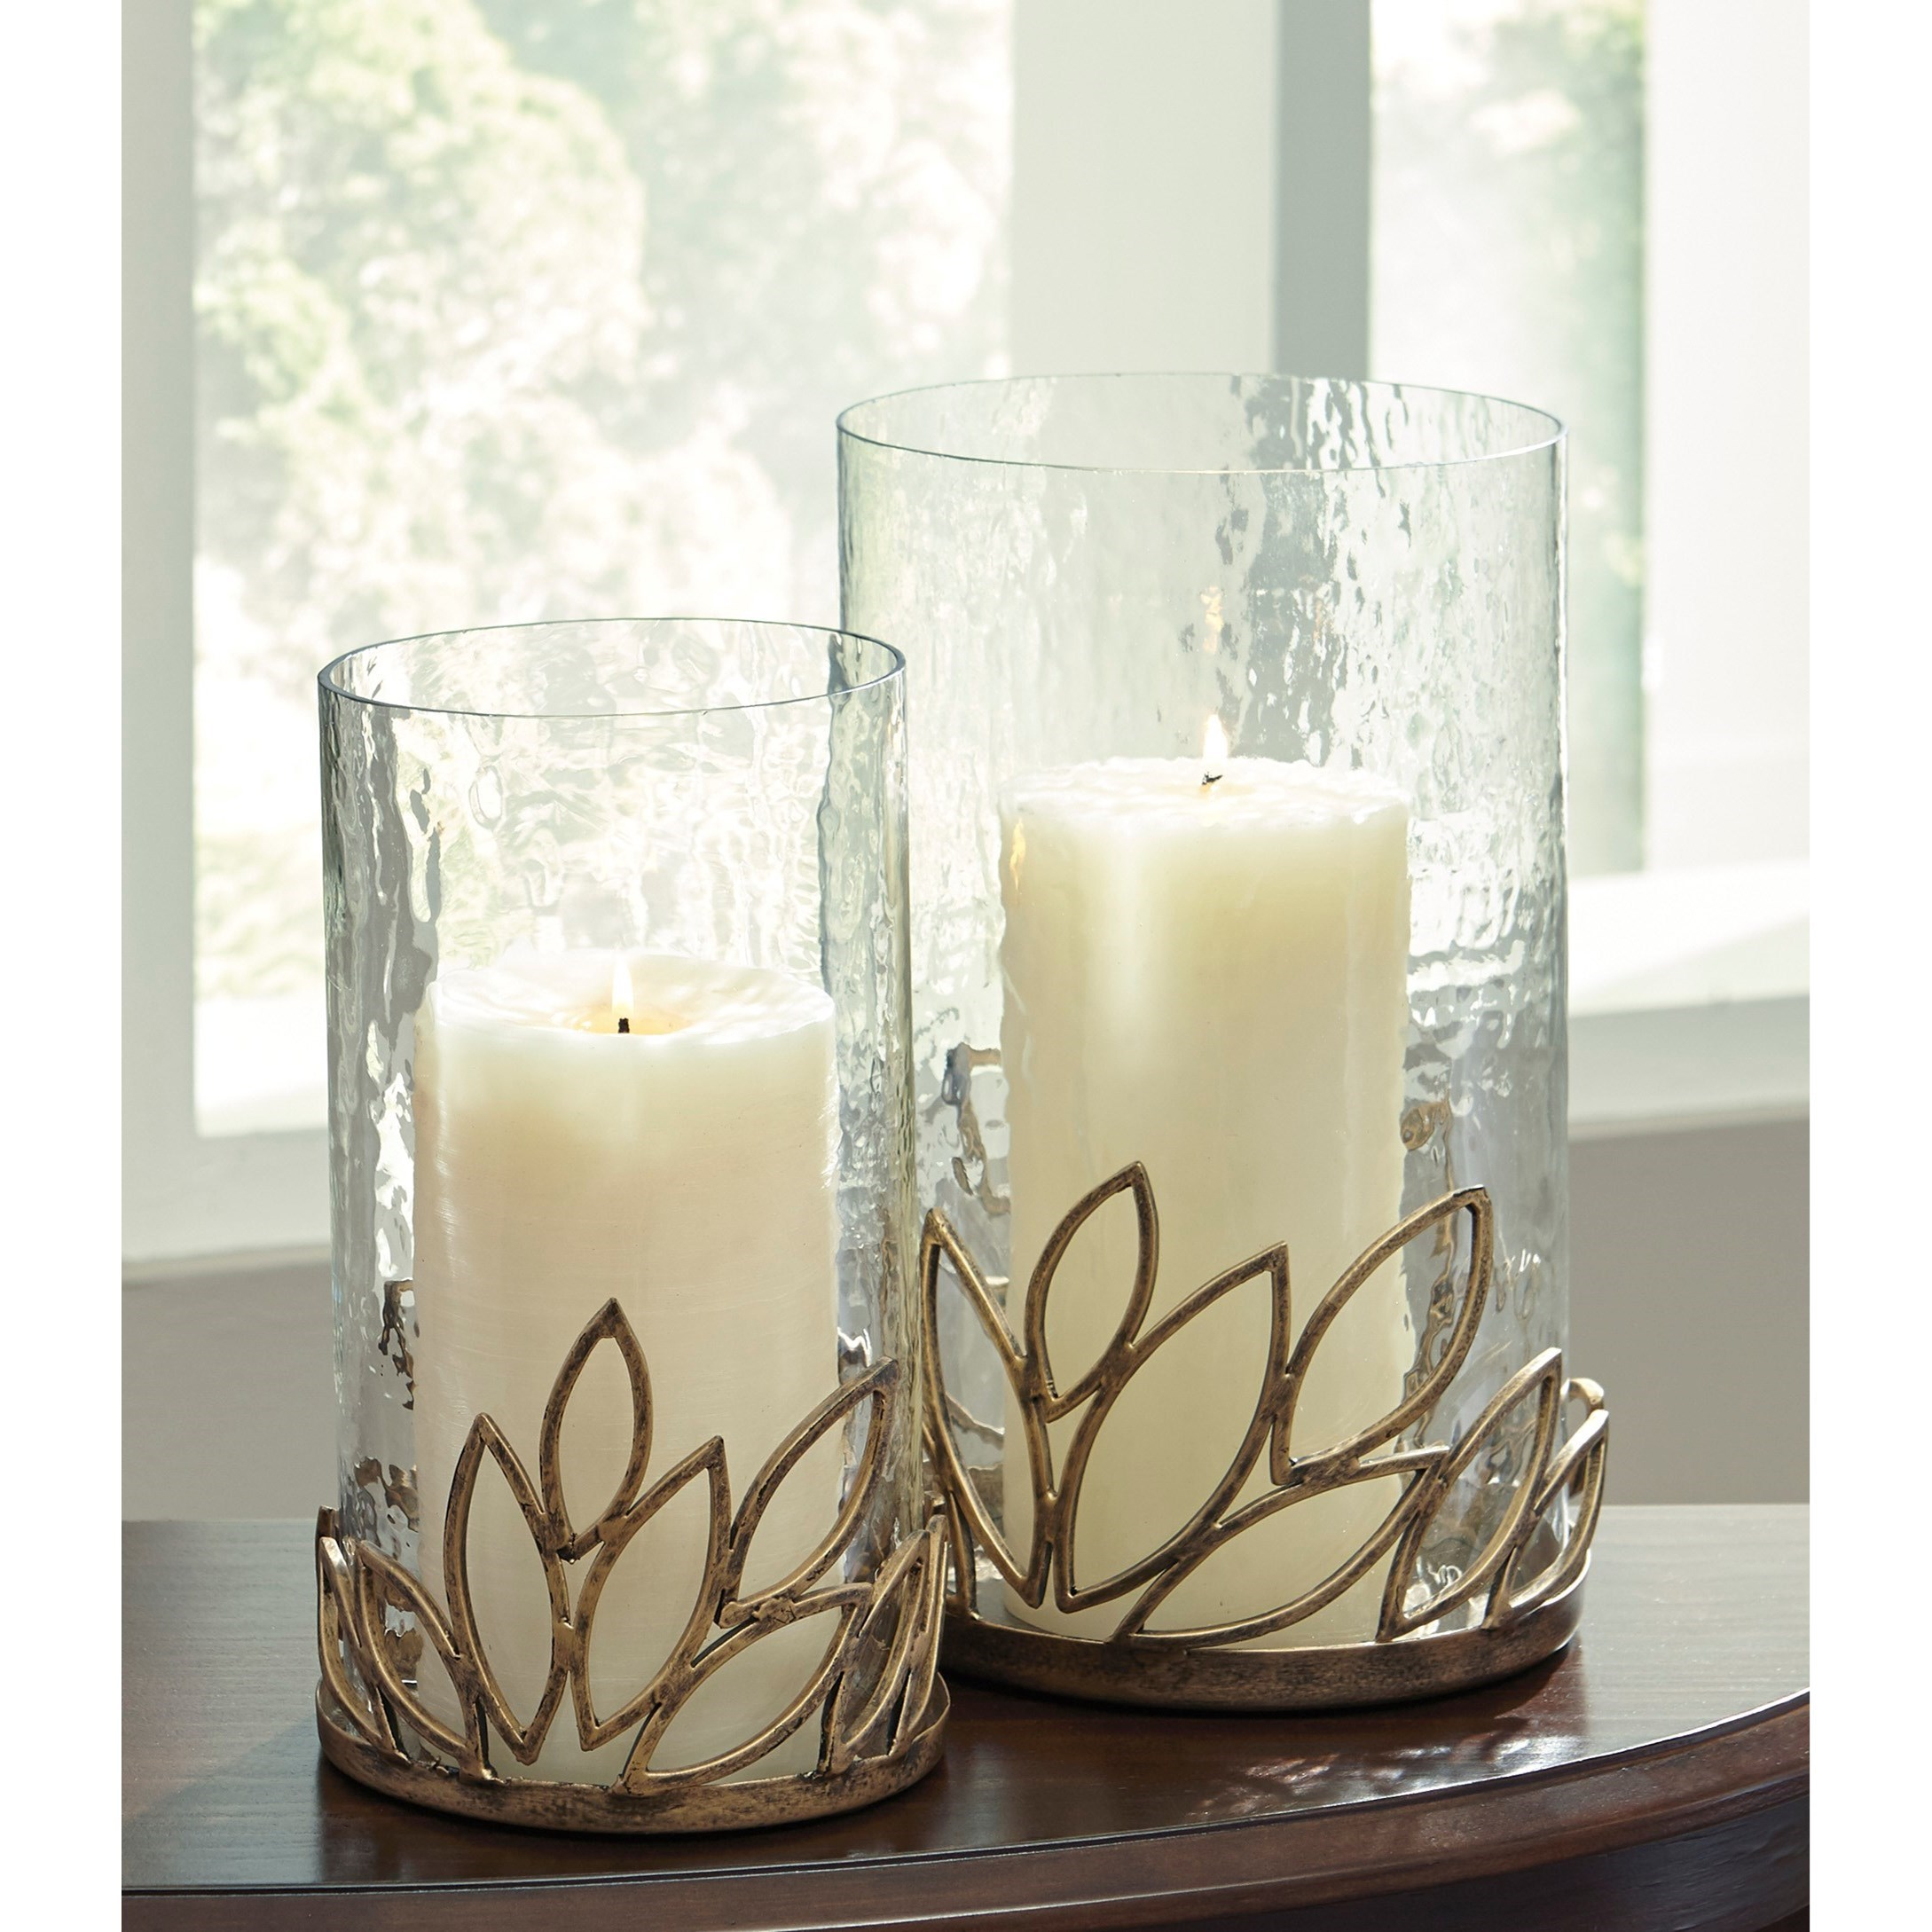 2 Pieces Silver Ashley Furniture Signature Design Contemporary Assorted Sizes Odele Glass And Metal Candle Holder Set Home Kitchen Home Décor